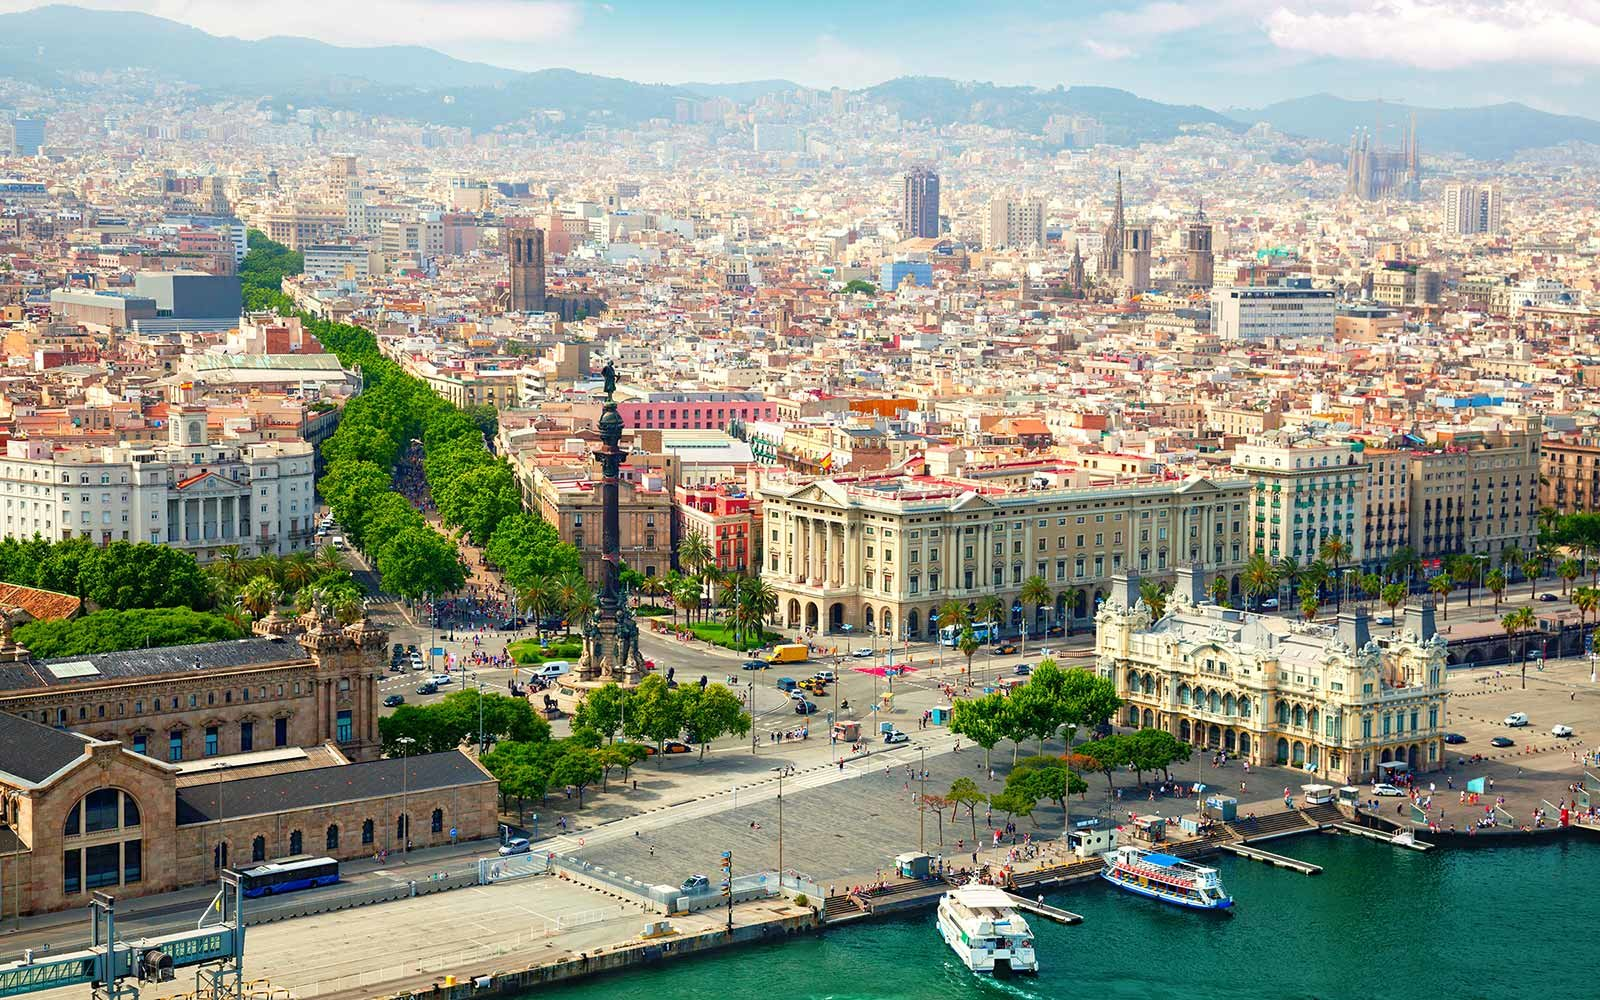 Fly to Barcelona This Winter for $303 Round-trip | Travel + Leisure